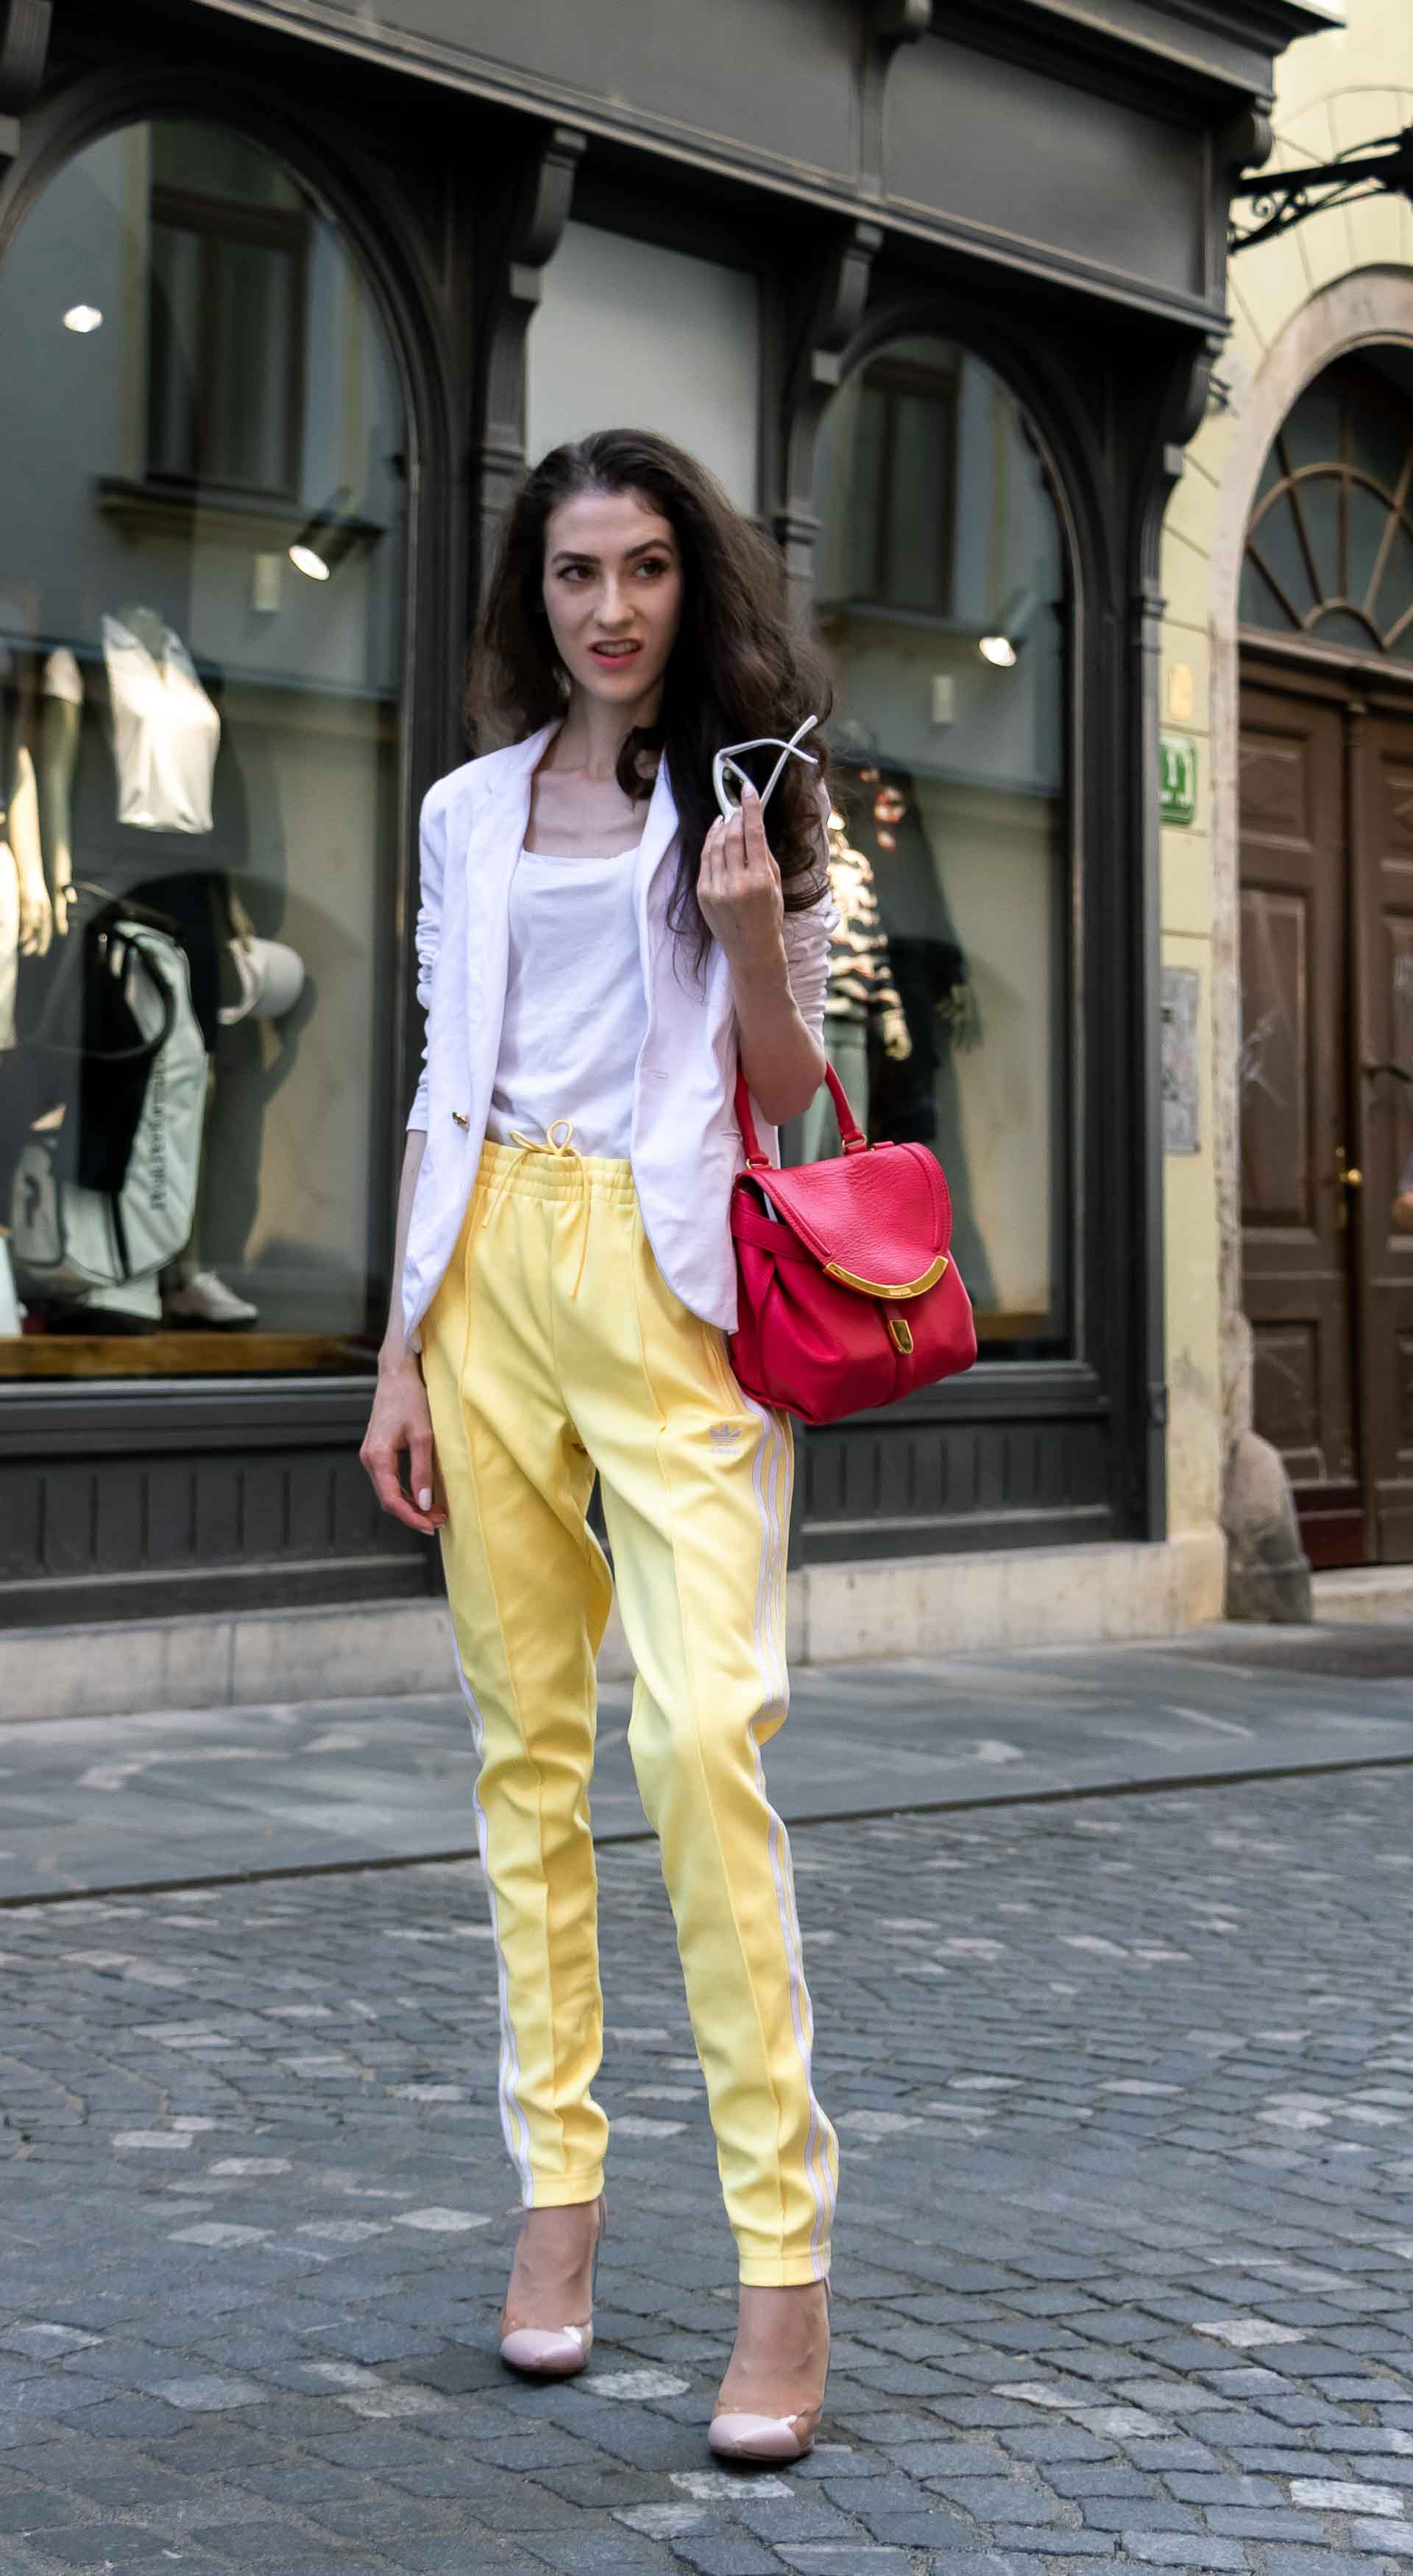 Veronika Lipar Fashion Blogger of Brunette from Wall Street dressed in white blazer, white H&M t-shirt, yellow Addidas track pants, See by Chloé pink top handle bag, Adam Selman x Le Specs white cat eye Lolita sunglasses, pink blush Gianvito Rossi plexi pumps on the street in Ljubljana